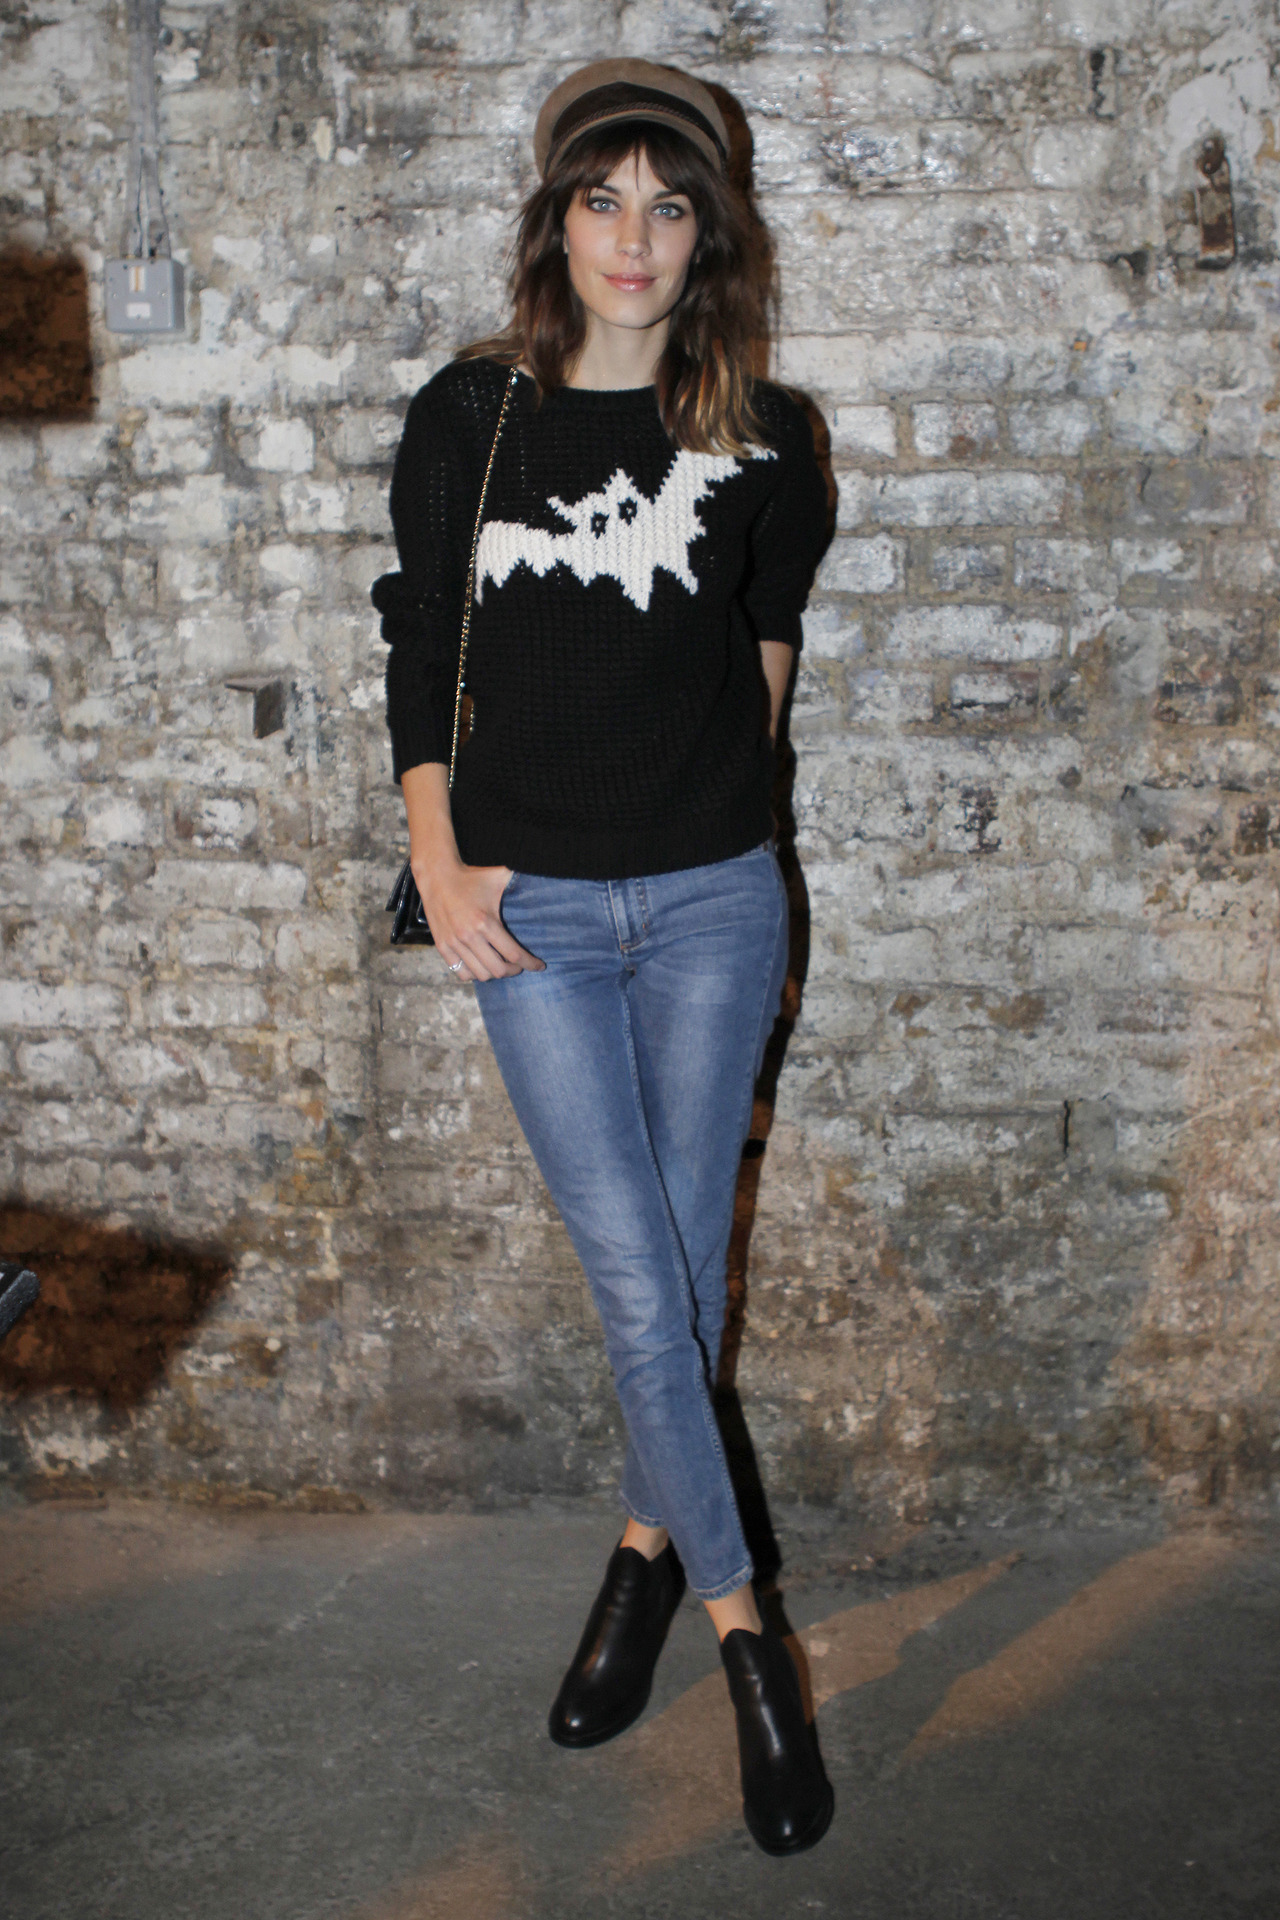 Alexa Chung at London Fashion Week / Photographer: Anthea Simms Click here for more street style snap from across the pond.